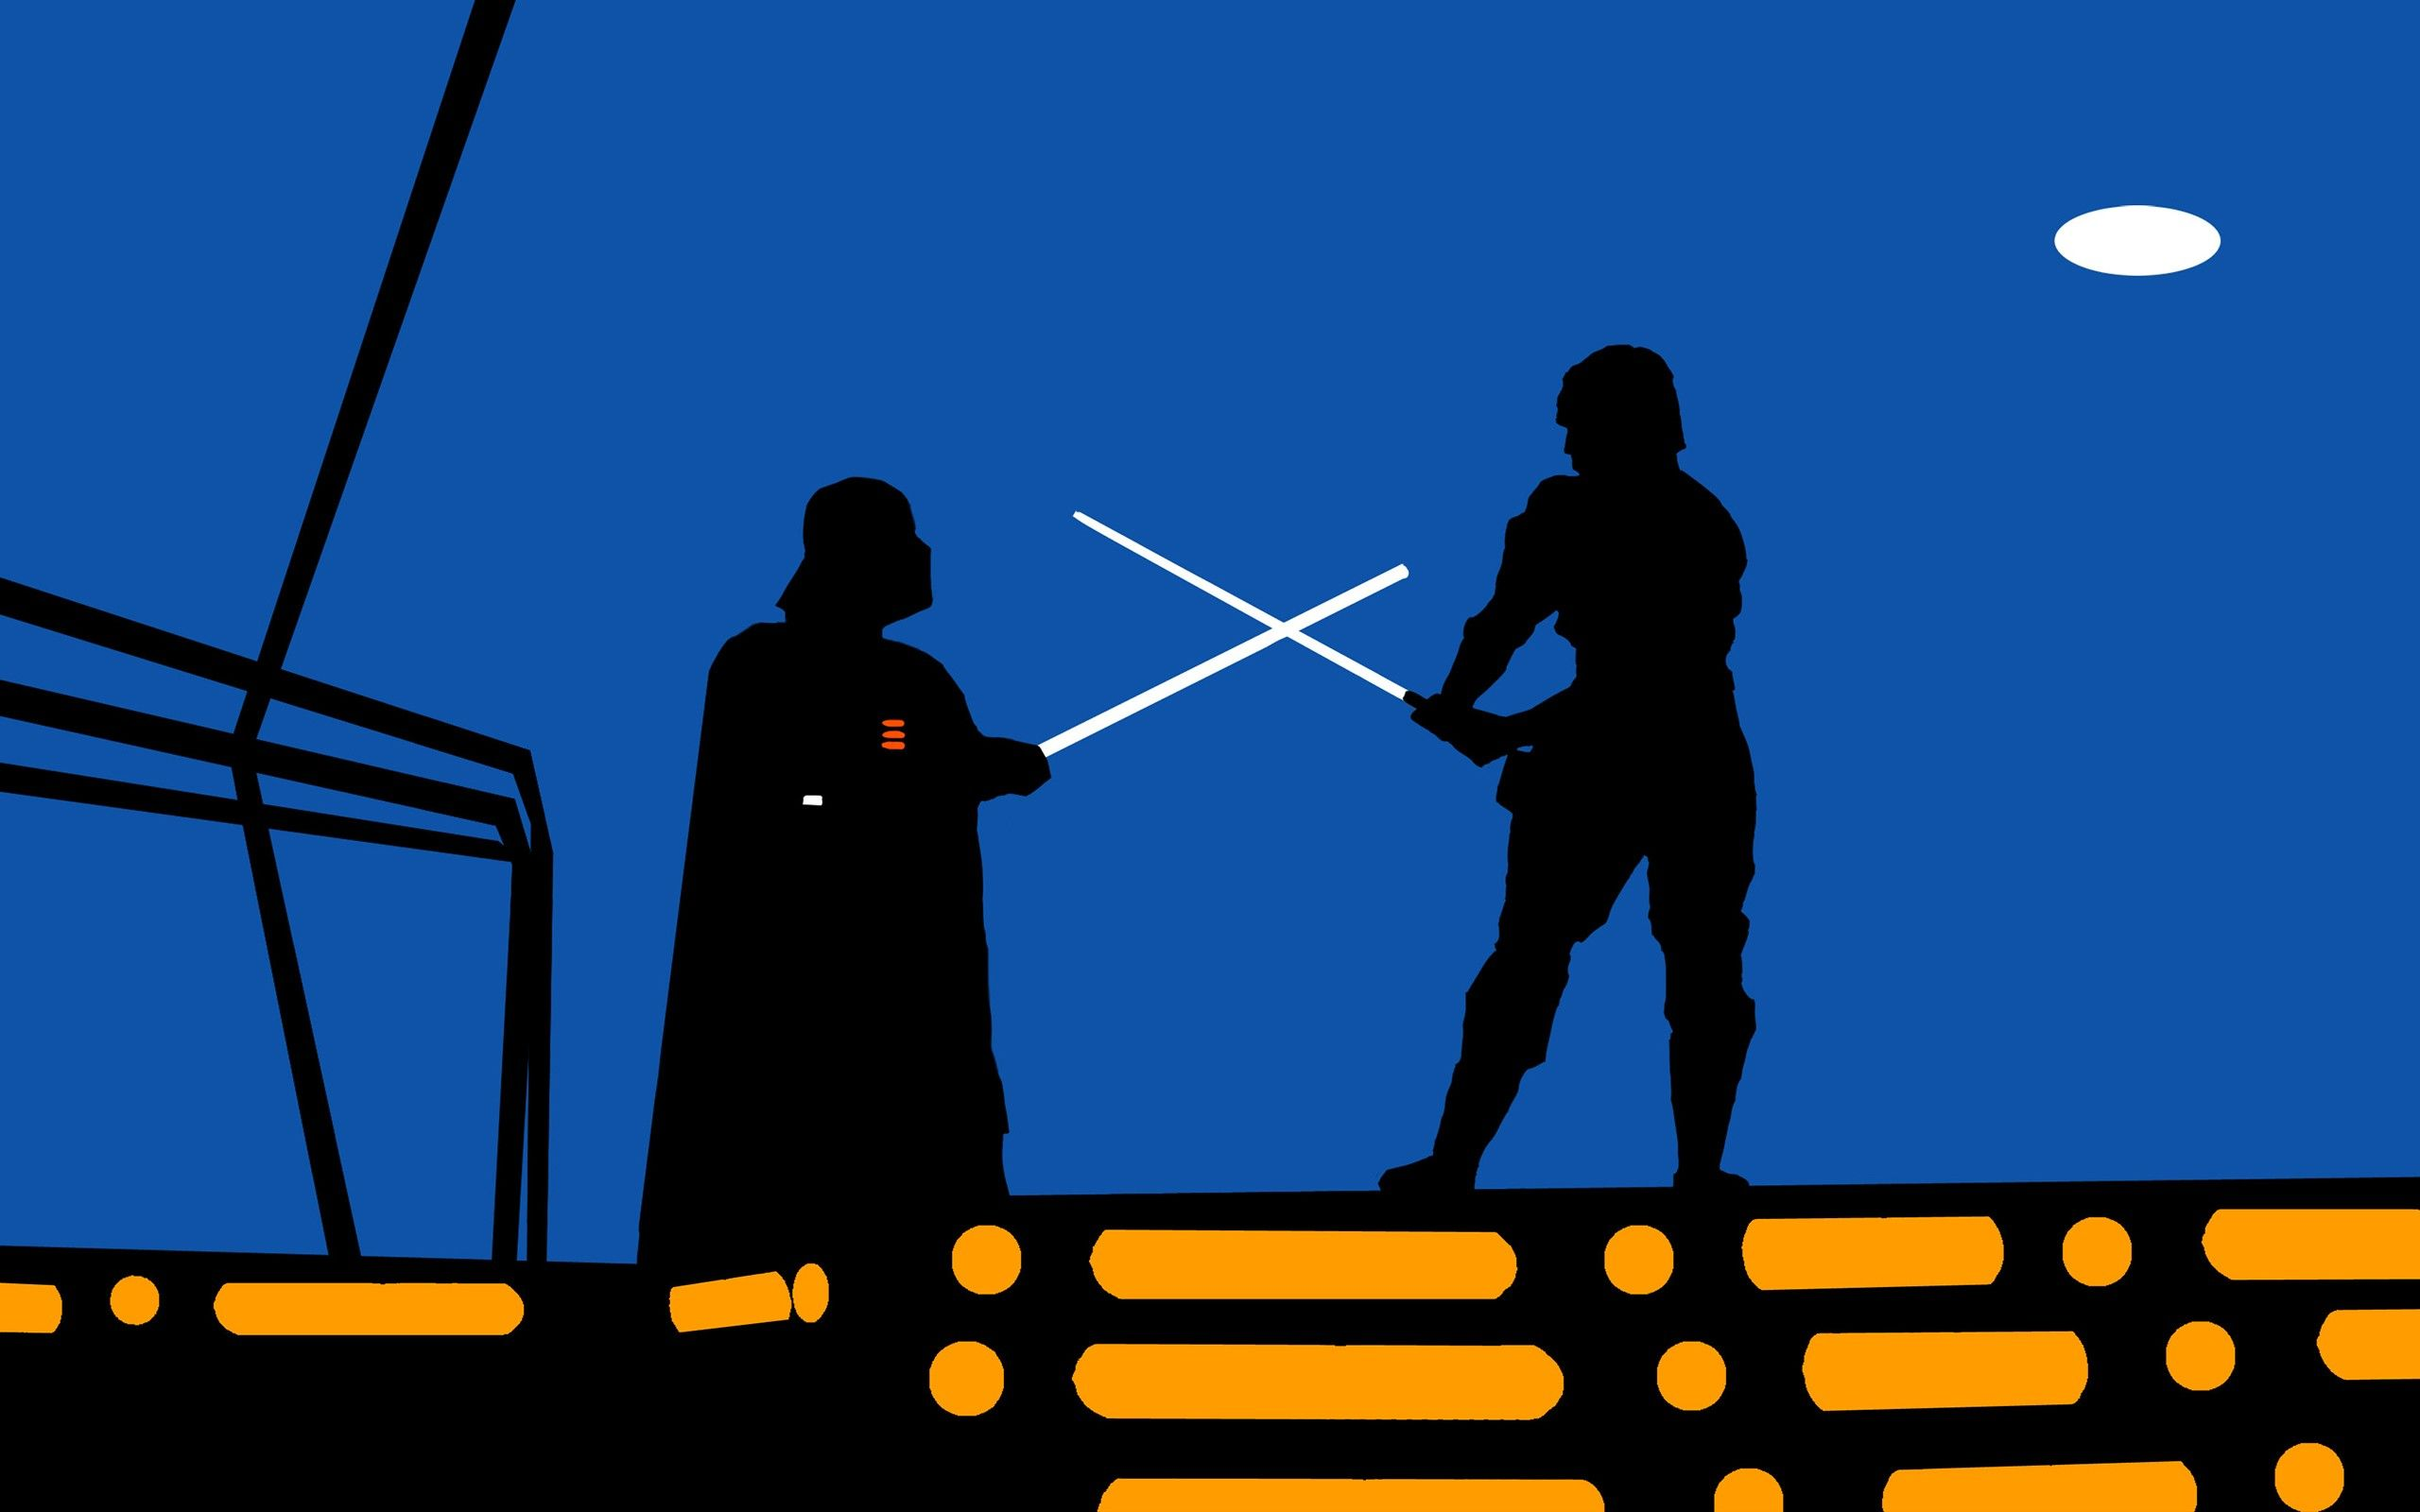 Star Wars, Minimalism, Darth Vader, Luke Skywalker, Fighting, Lightsaber Wallpapers HD / Desktop and Mobile Backgrounds